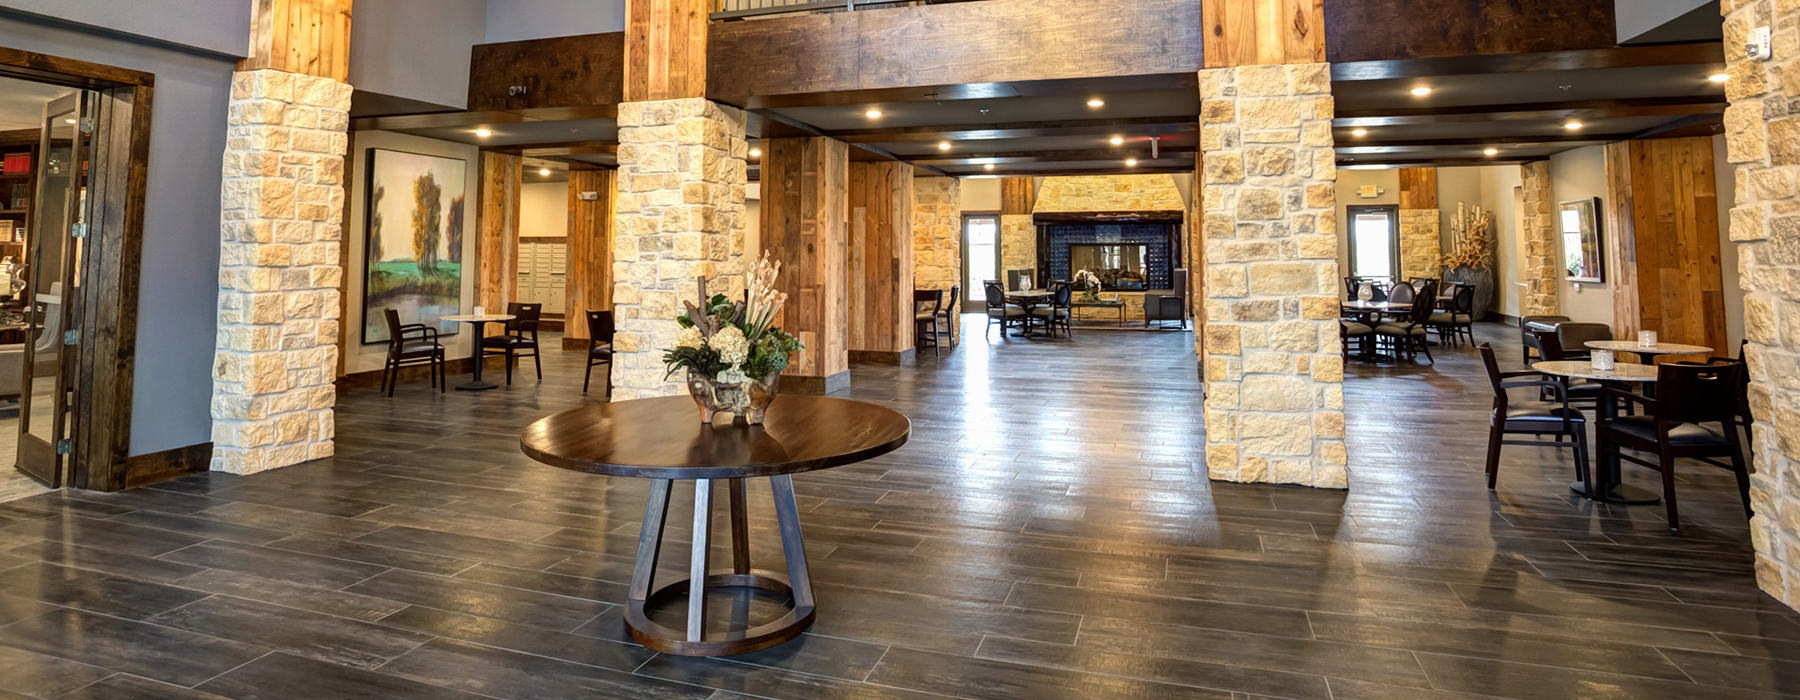 residents lobby with hardwood floors, large pillars, and tall ceilings